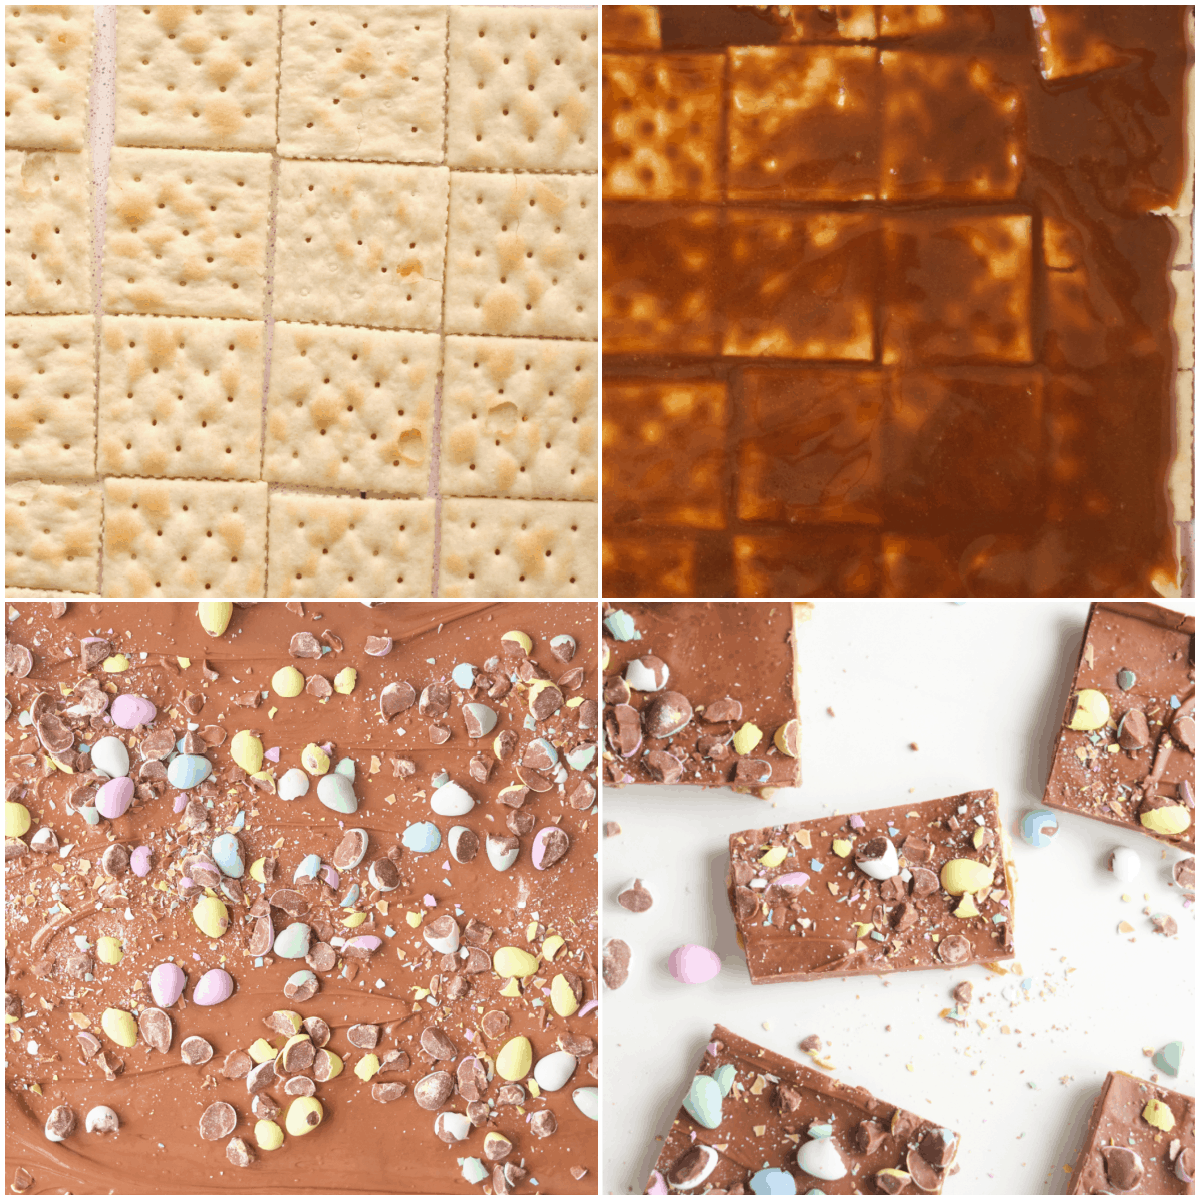 image collage showing the steps for making easter cracker candy